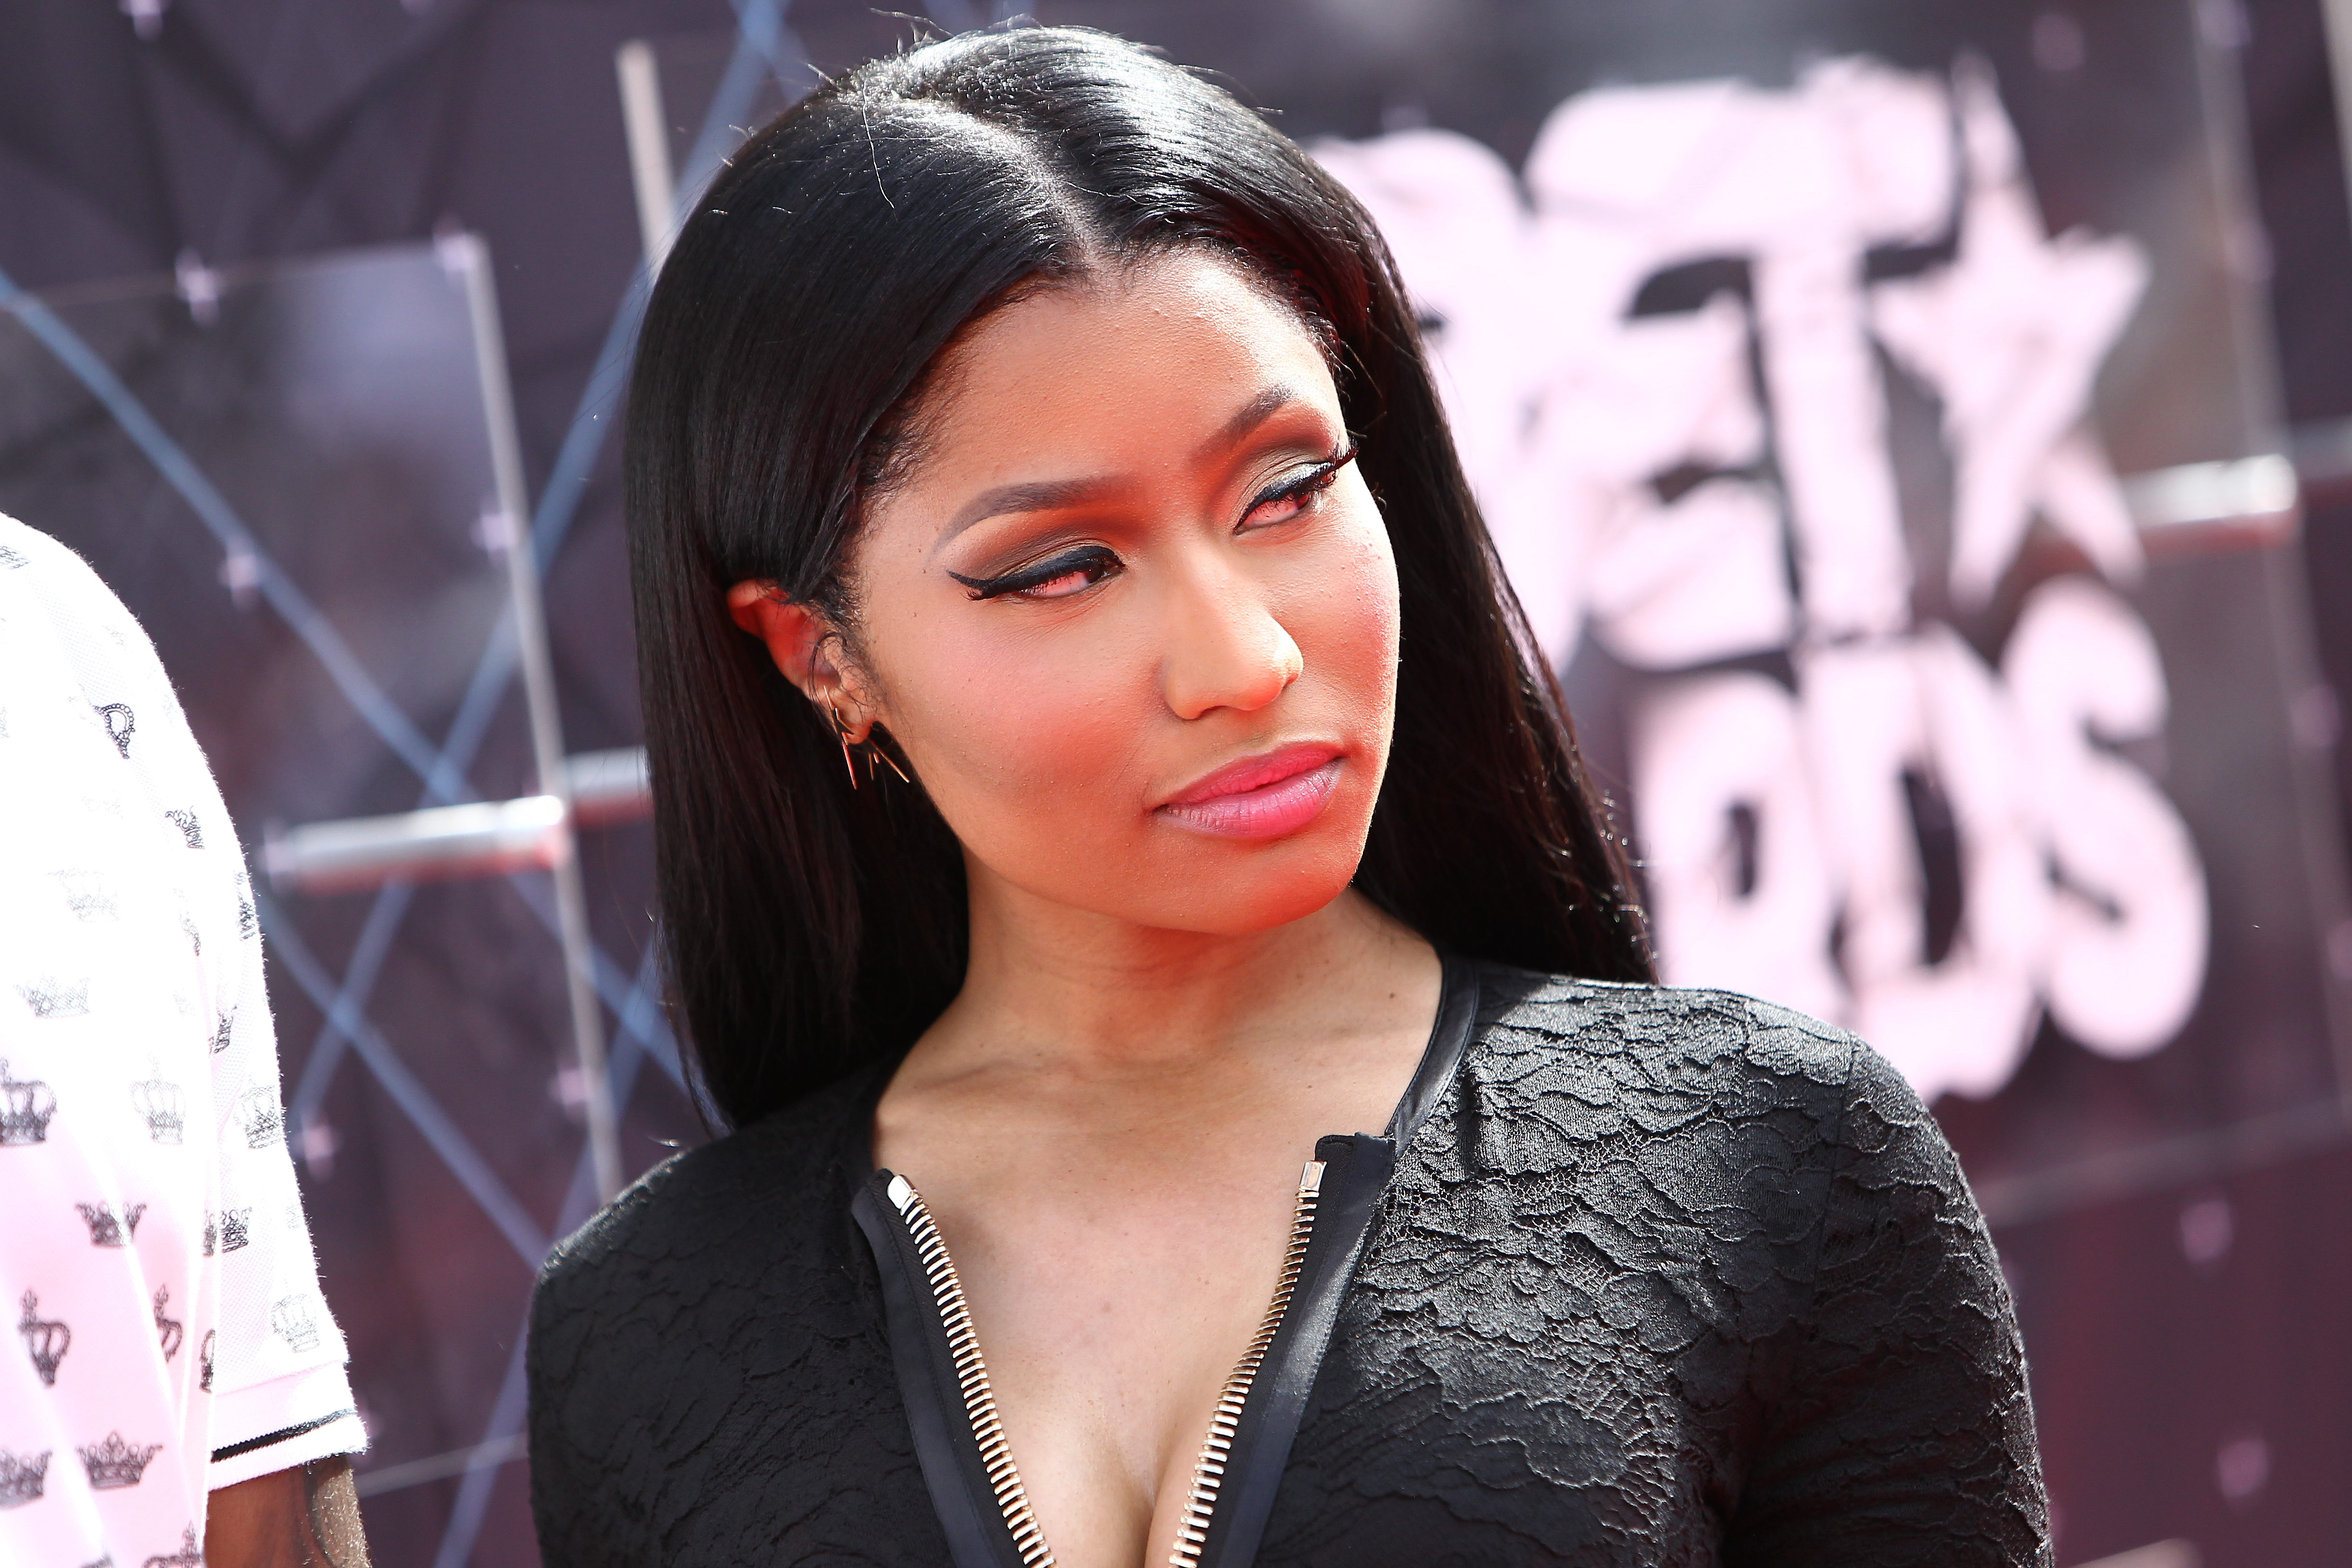 Nicki Minaj drops BET concert after network posts mocking tweet